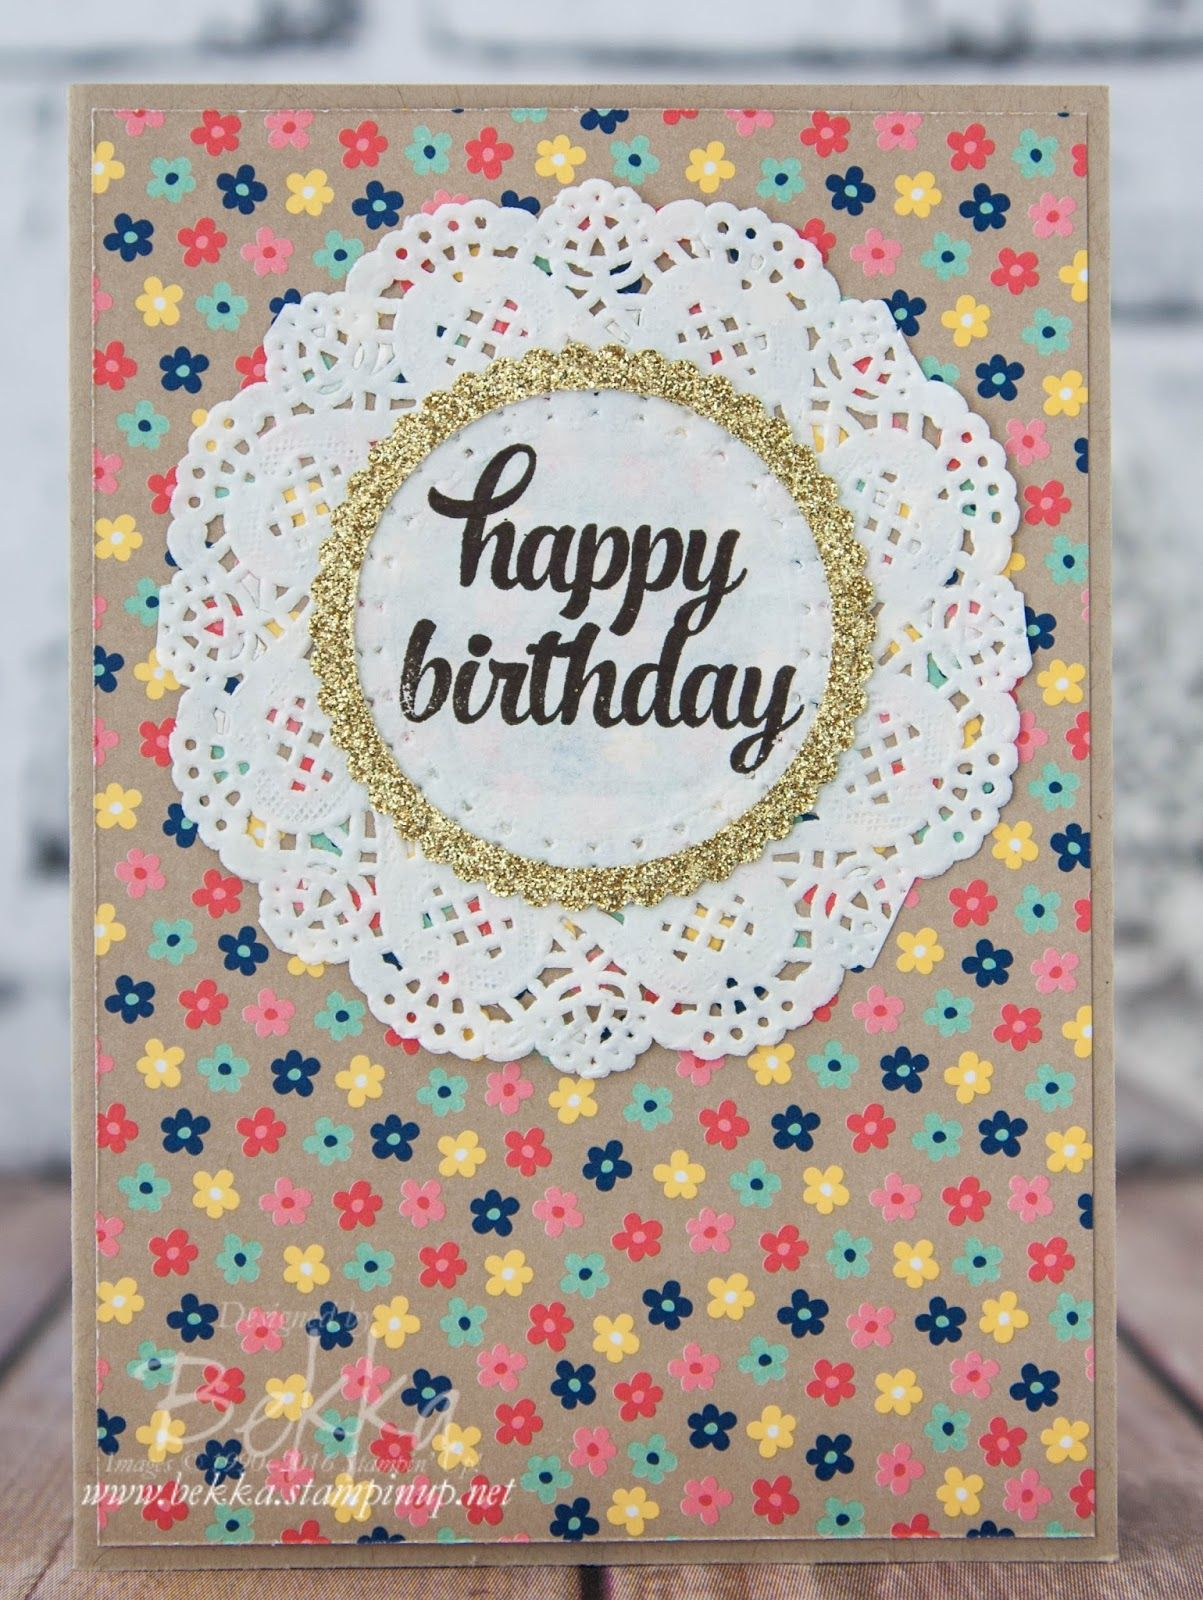 How To Make 6 Birthday Cards From A Single Sheet Of 12x12 Patterned